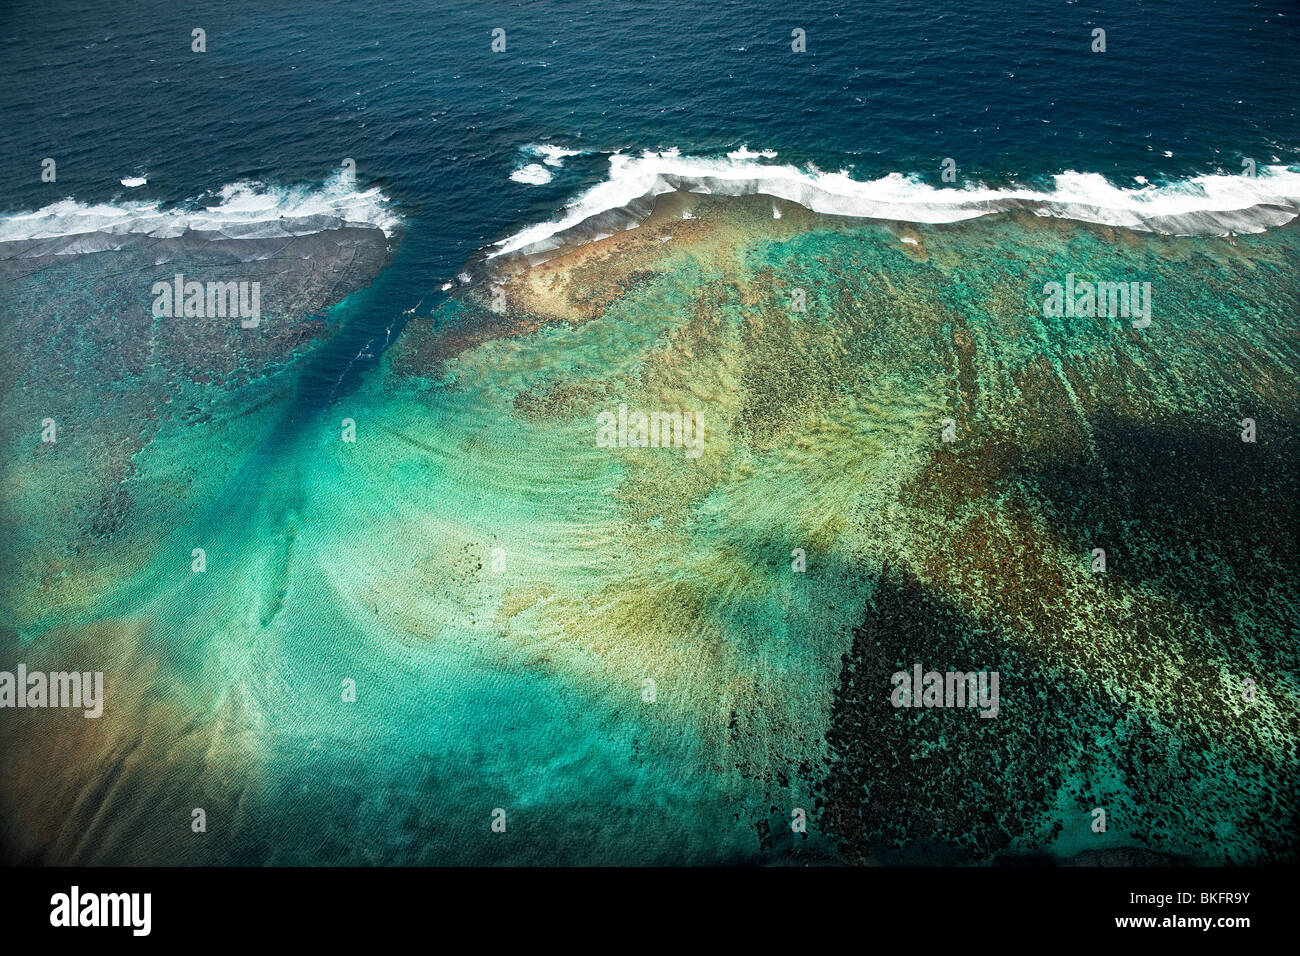 Aerial view of coral reef and ocean - Stock Image